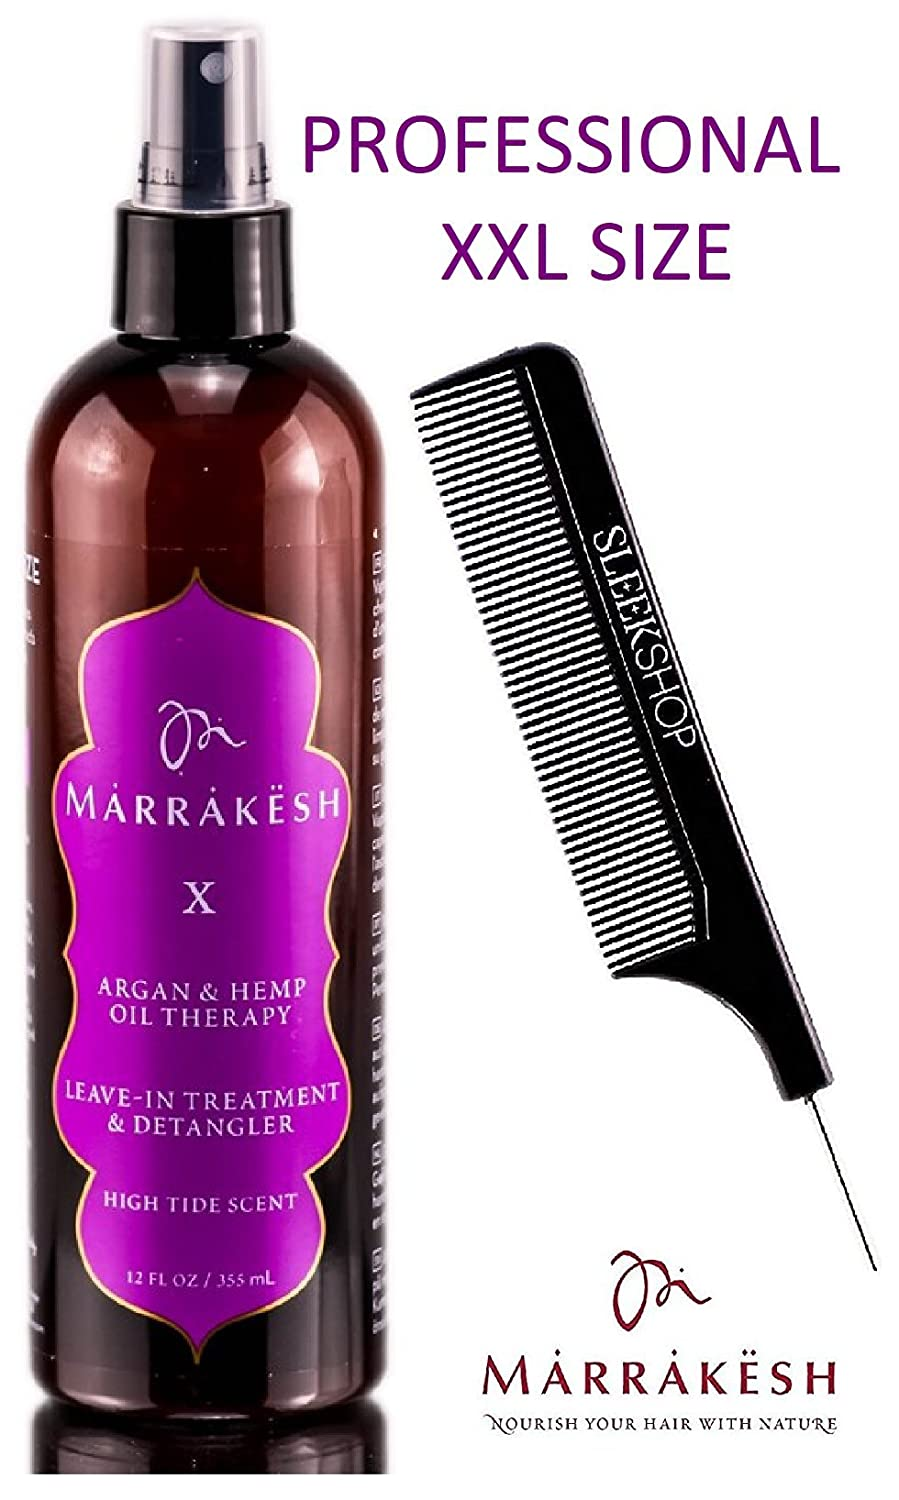 Marrakesh X Leave-In Treatment & Detangler with Argan & Hemp Oil Therapy Spray Conditioner by Earthly Body (with Sleek Steel Pin Tail Comb) (High Tide - 12 oz/XXL PRO) Earthly Body by Marrakesh